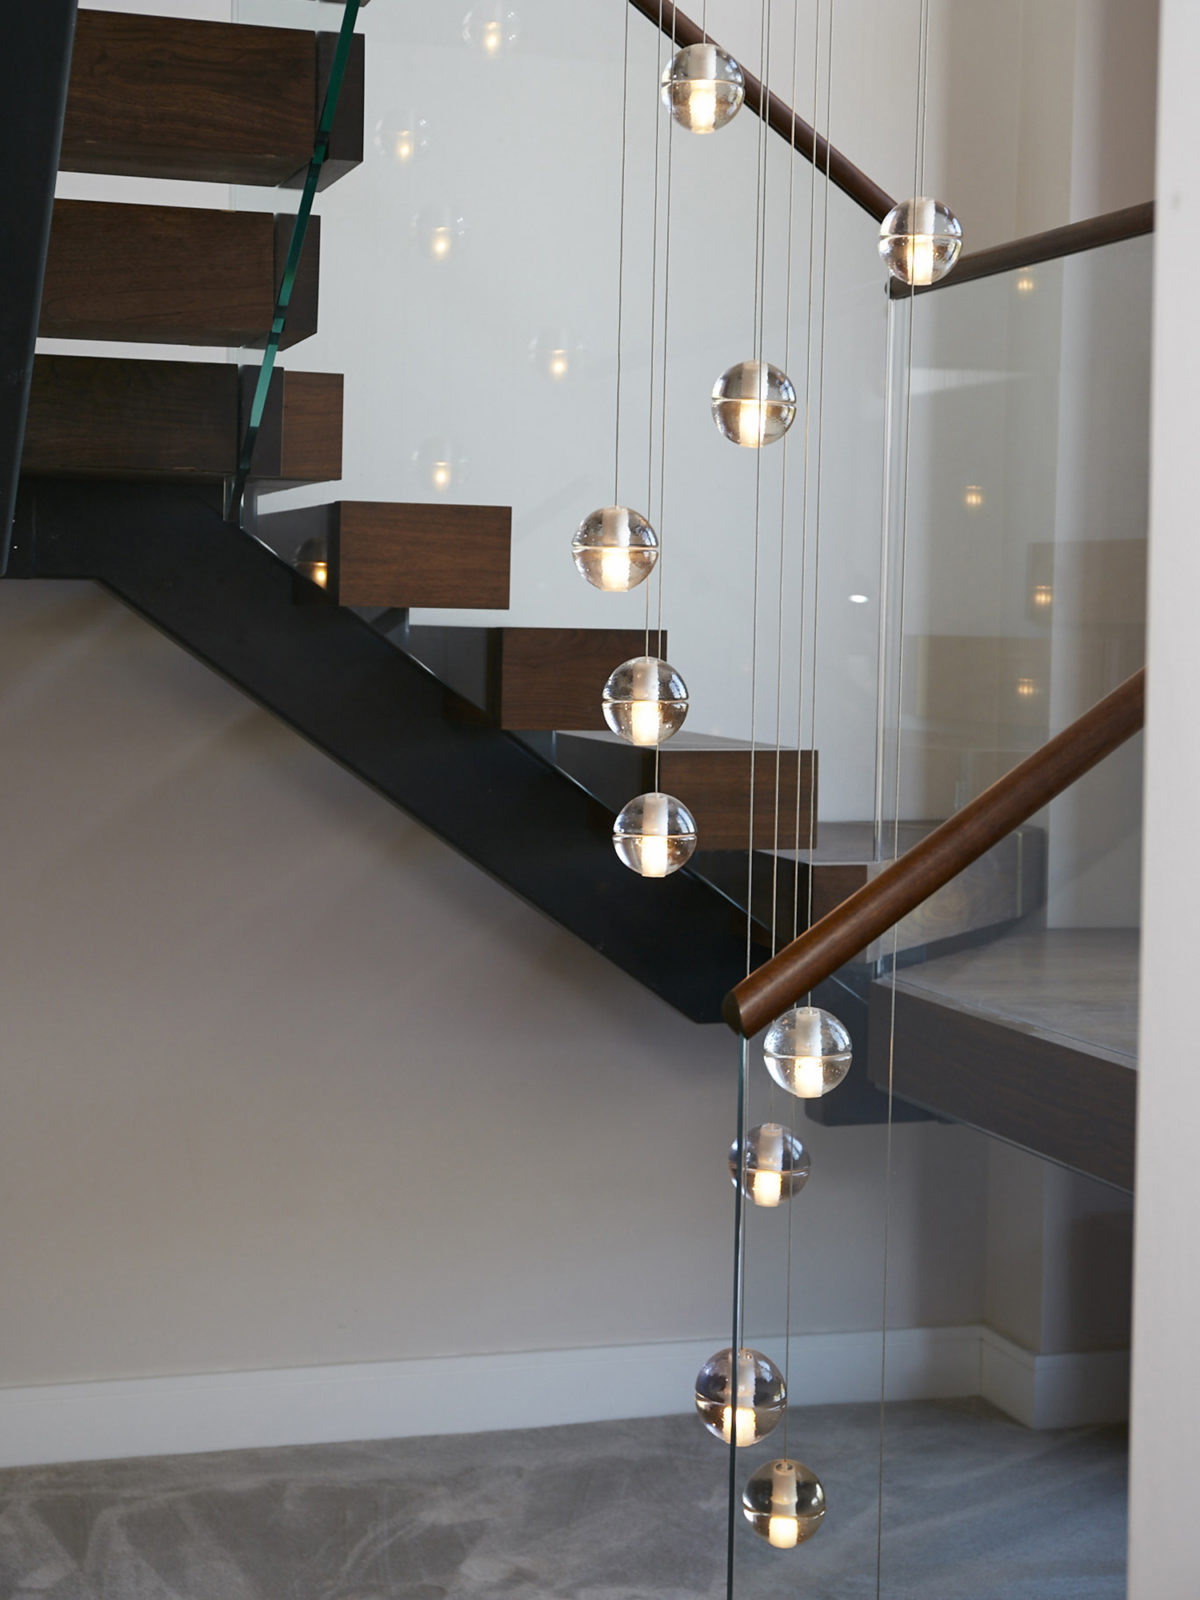 Study staircase with Bocci lights